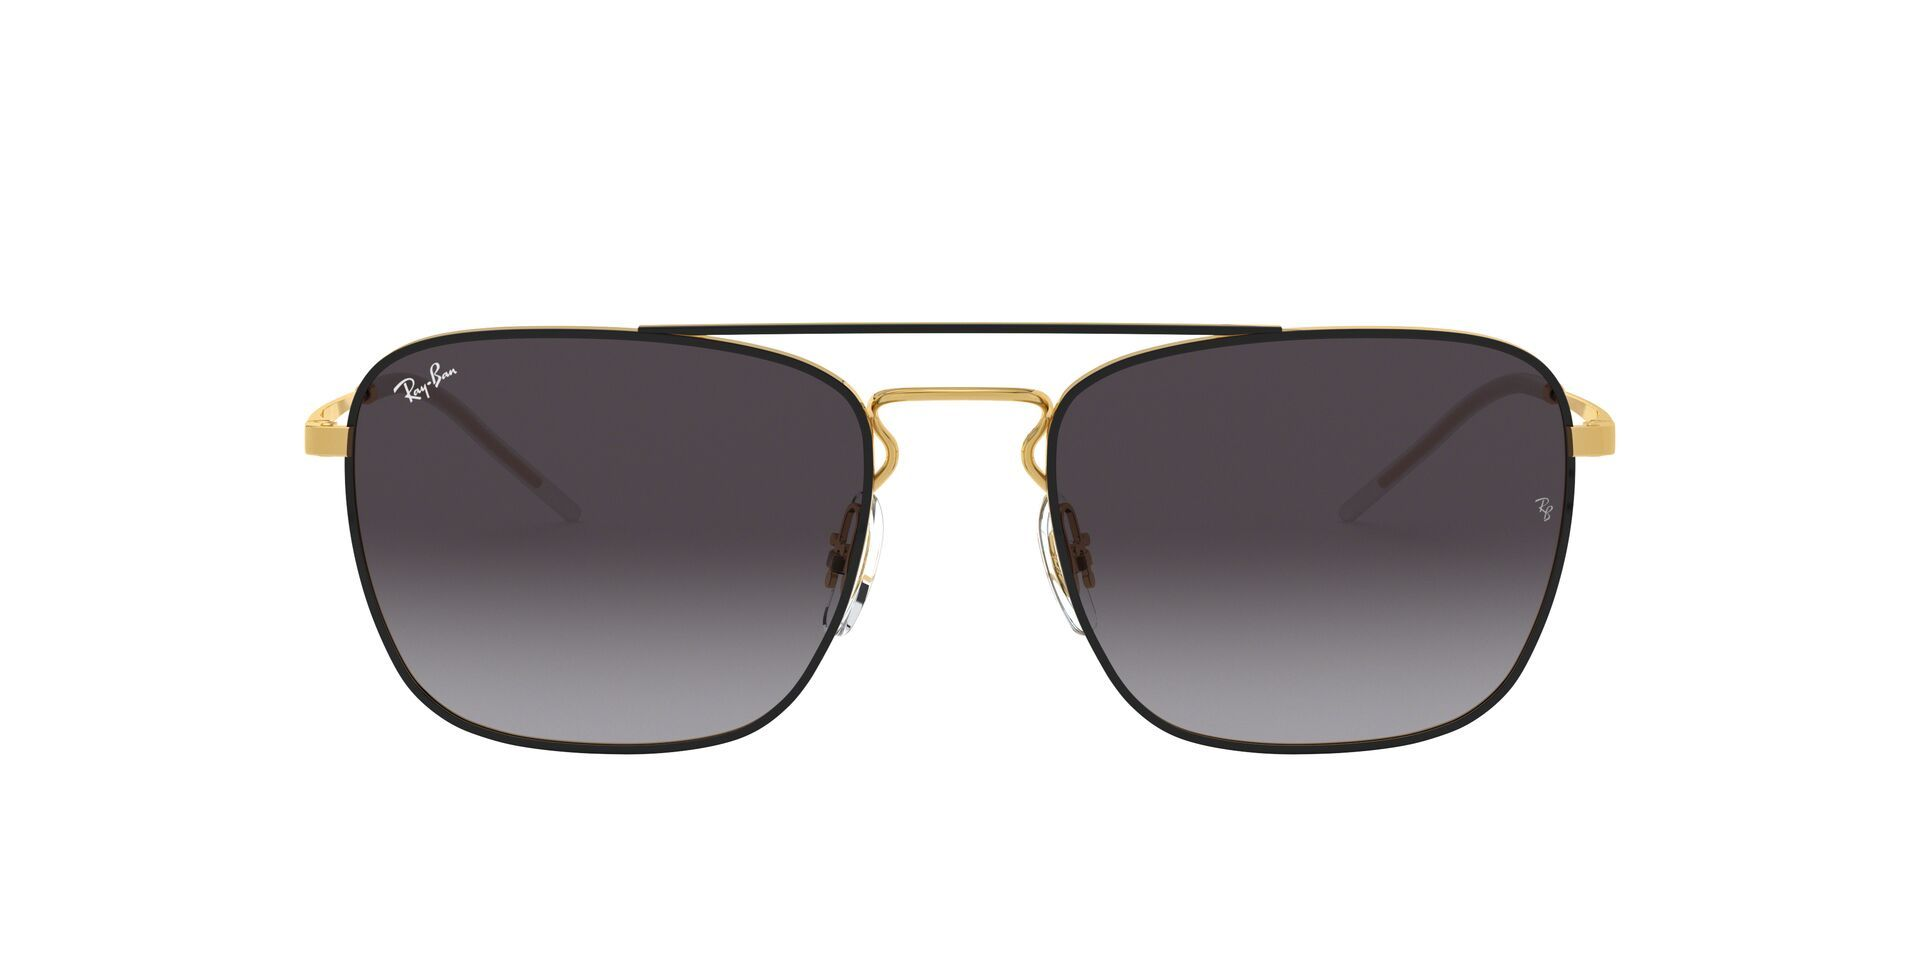 Ray Ban - RB3588 Black Gold Rectangular Unisex Sunglasses - 55mm-Sunglasses-Designer Eyes